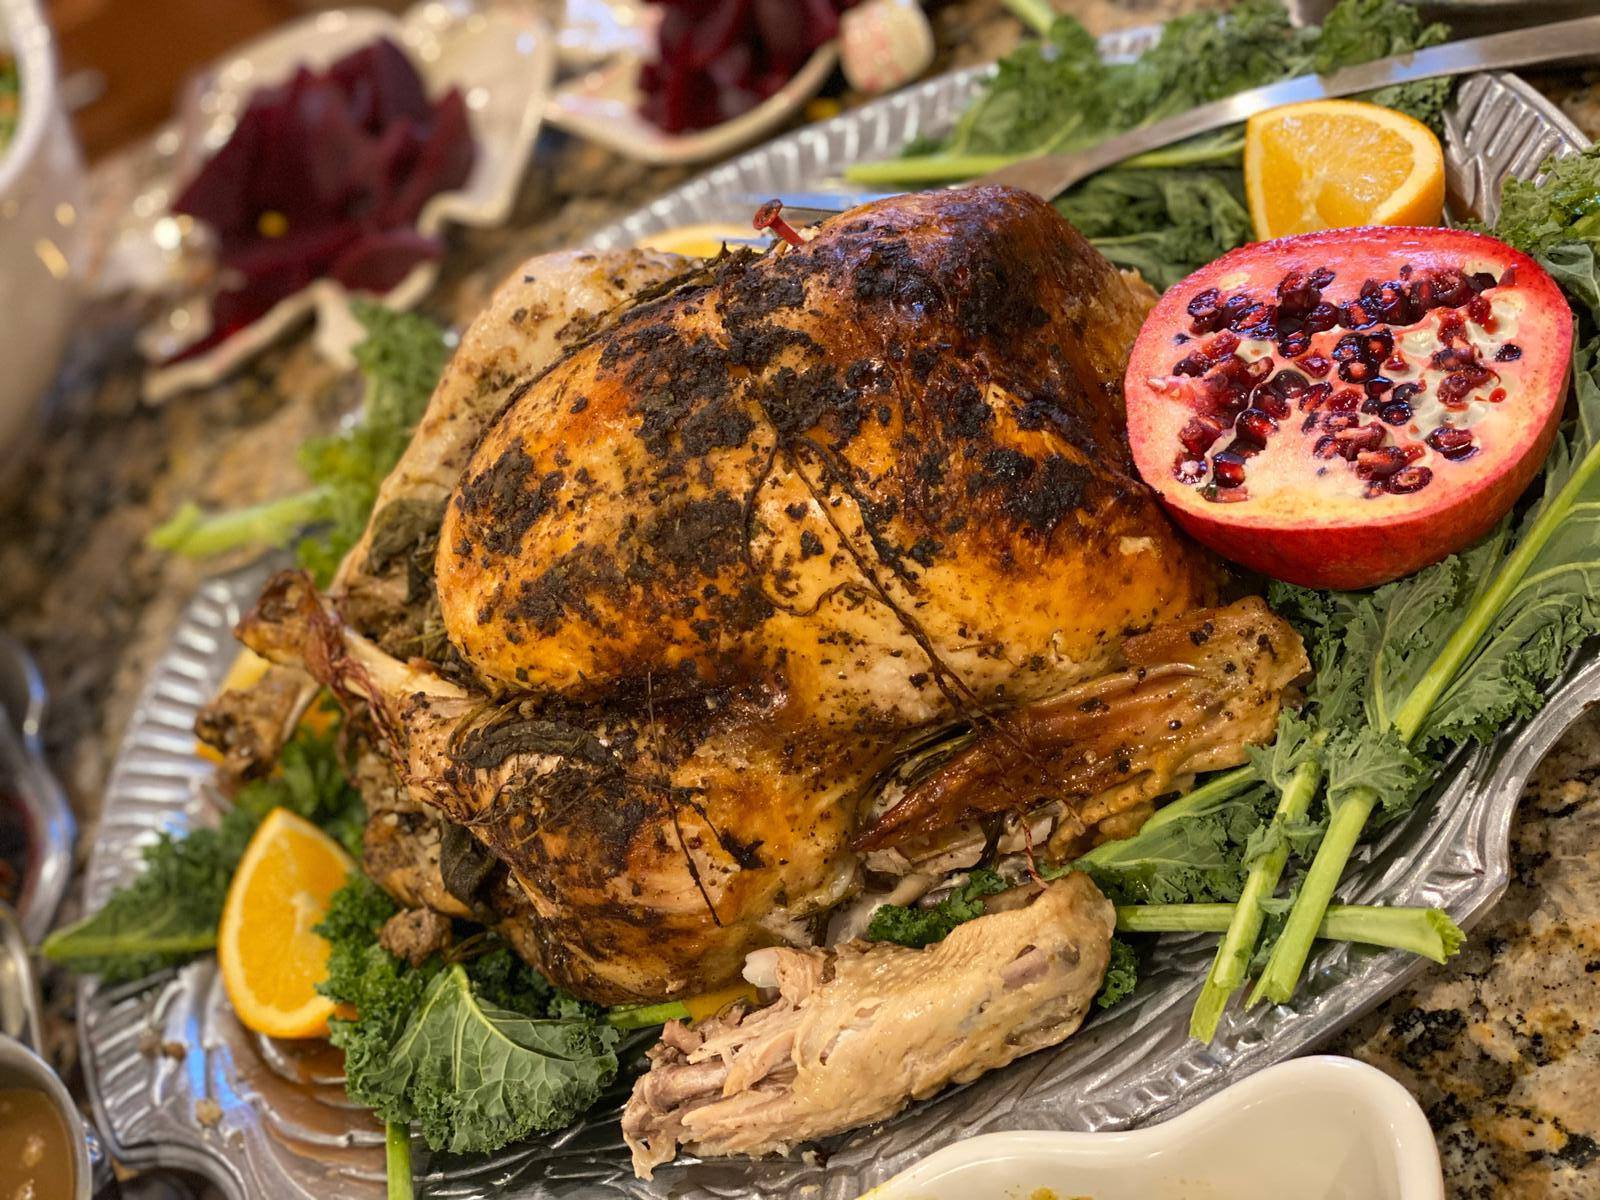 How to Cook a Turkey - Easy Turkey Recipe